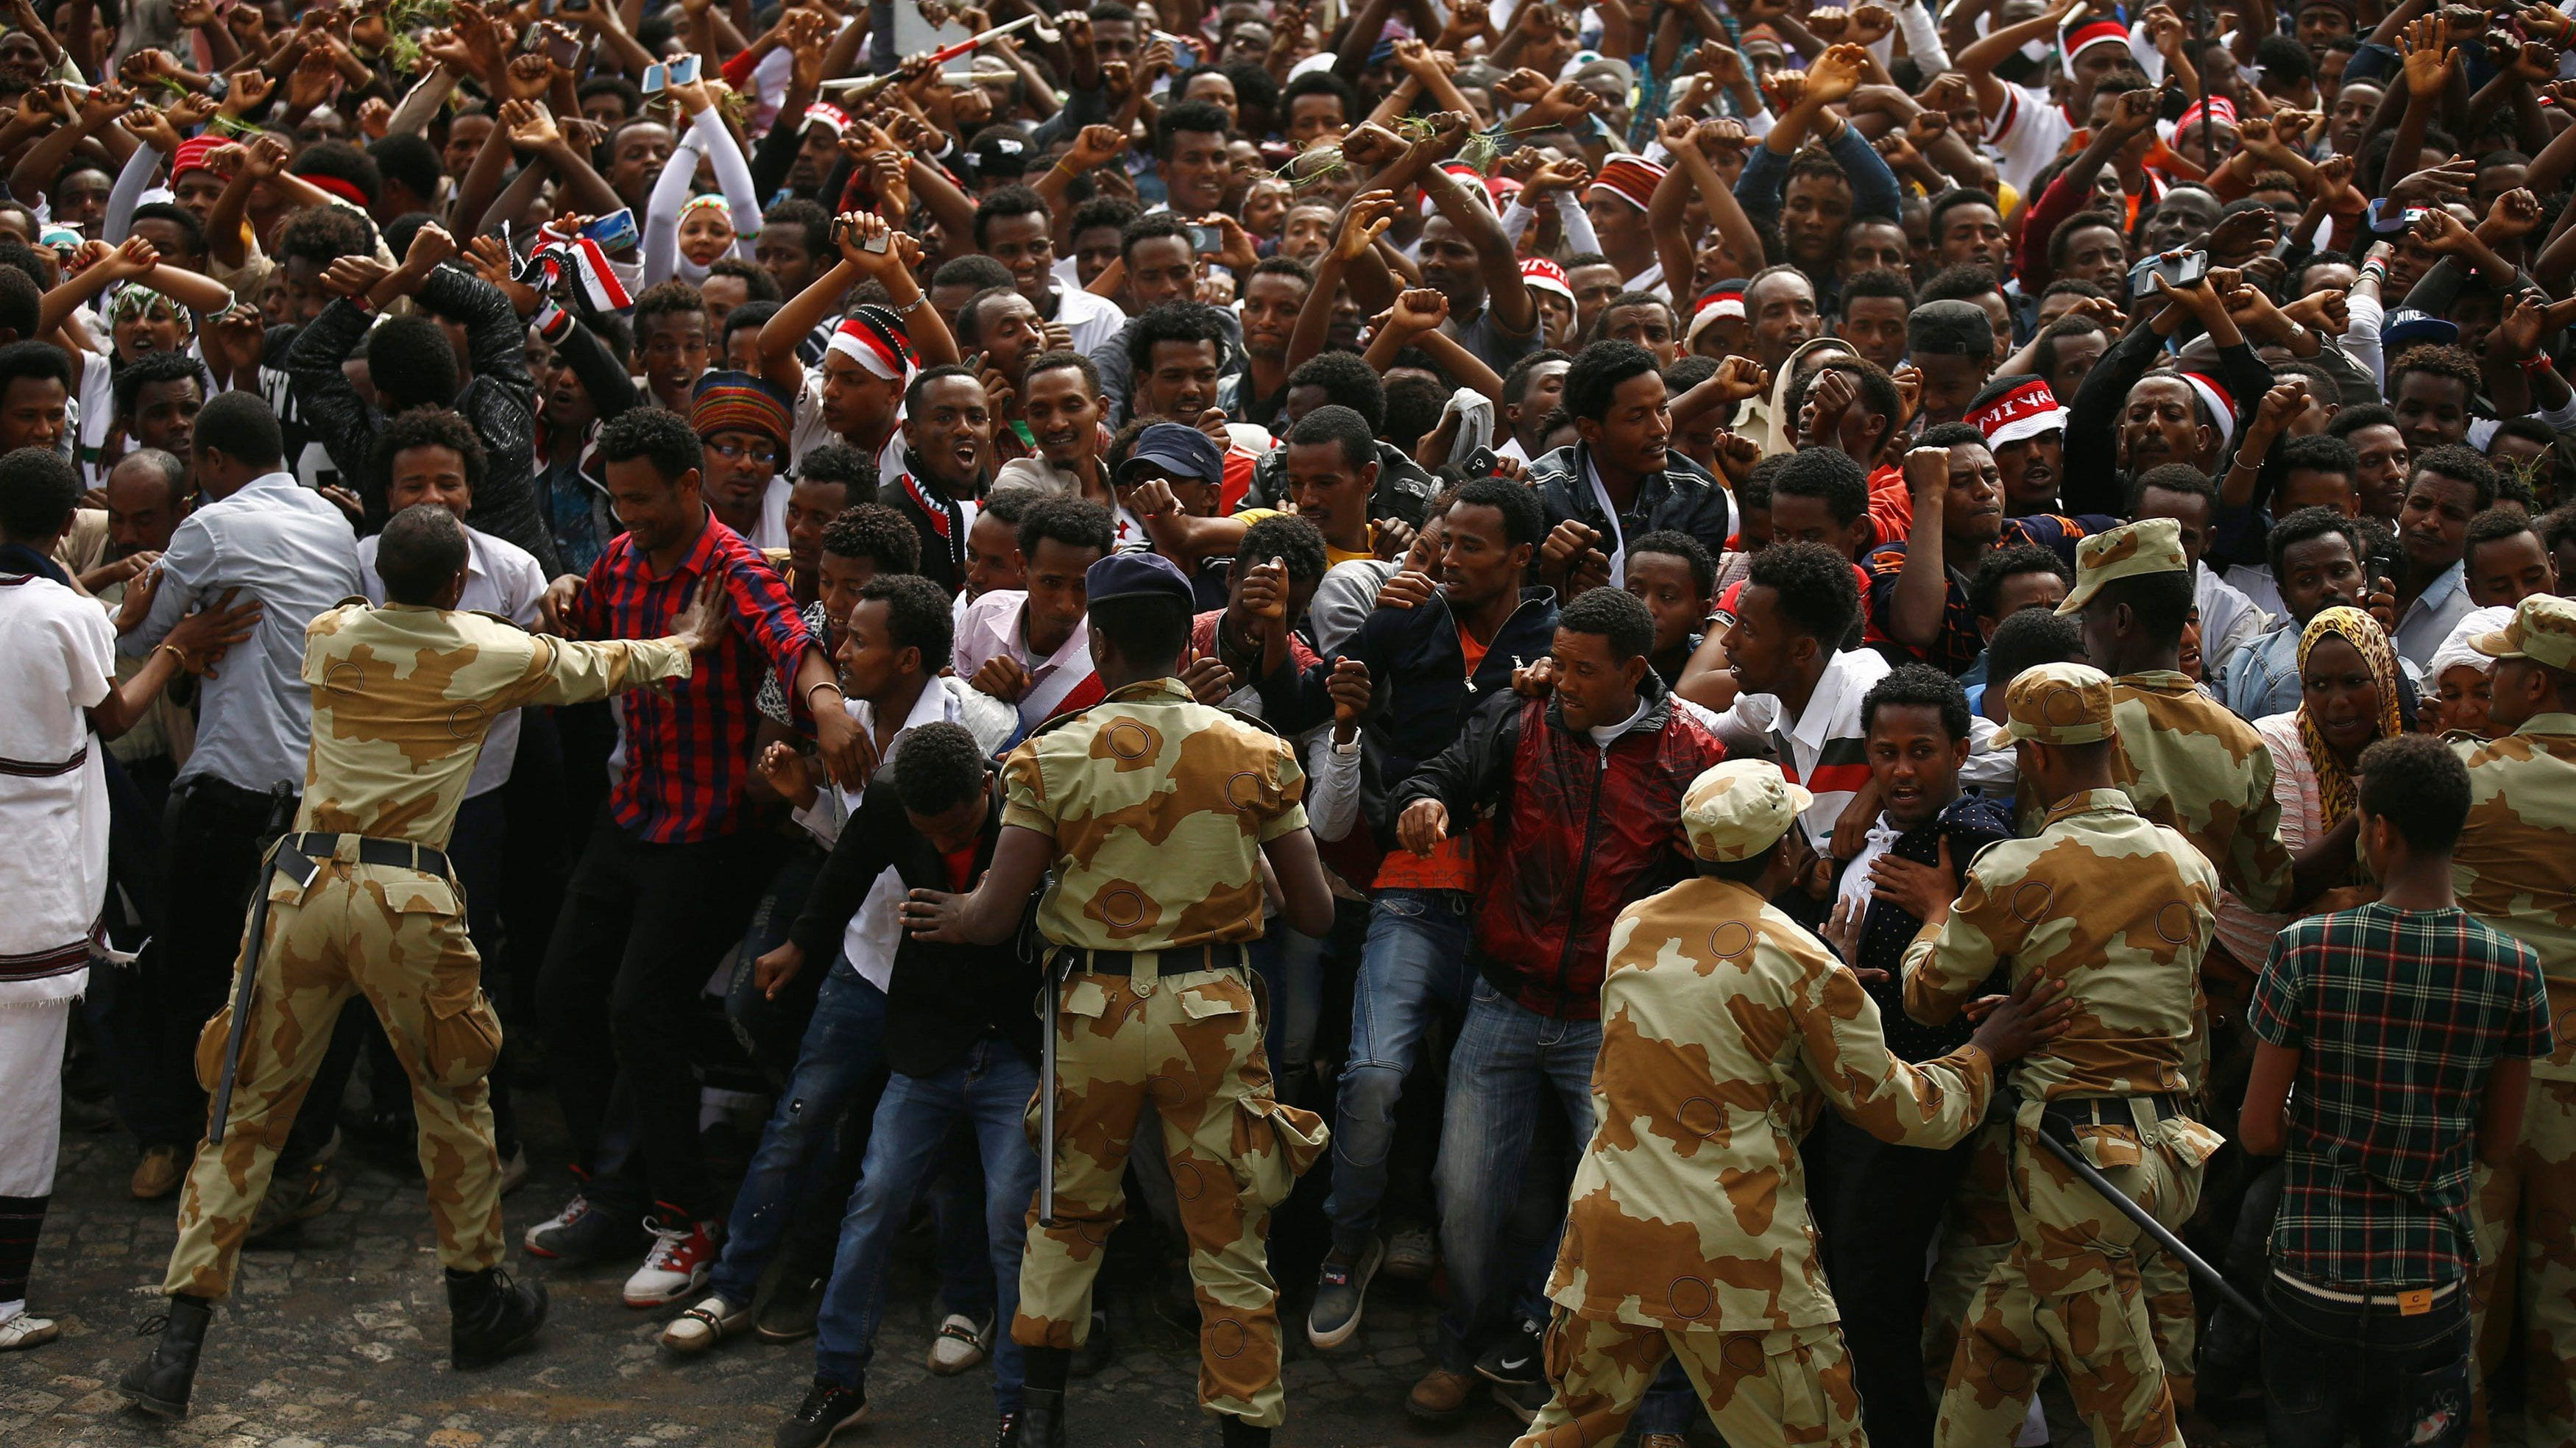 Image Ethnic Somalis and ethnic Oromos clashed last week leaving dozens dead [Image courtesy of Quartz].